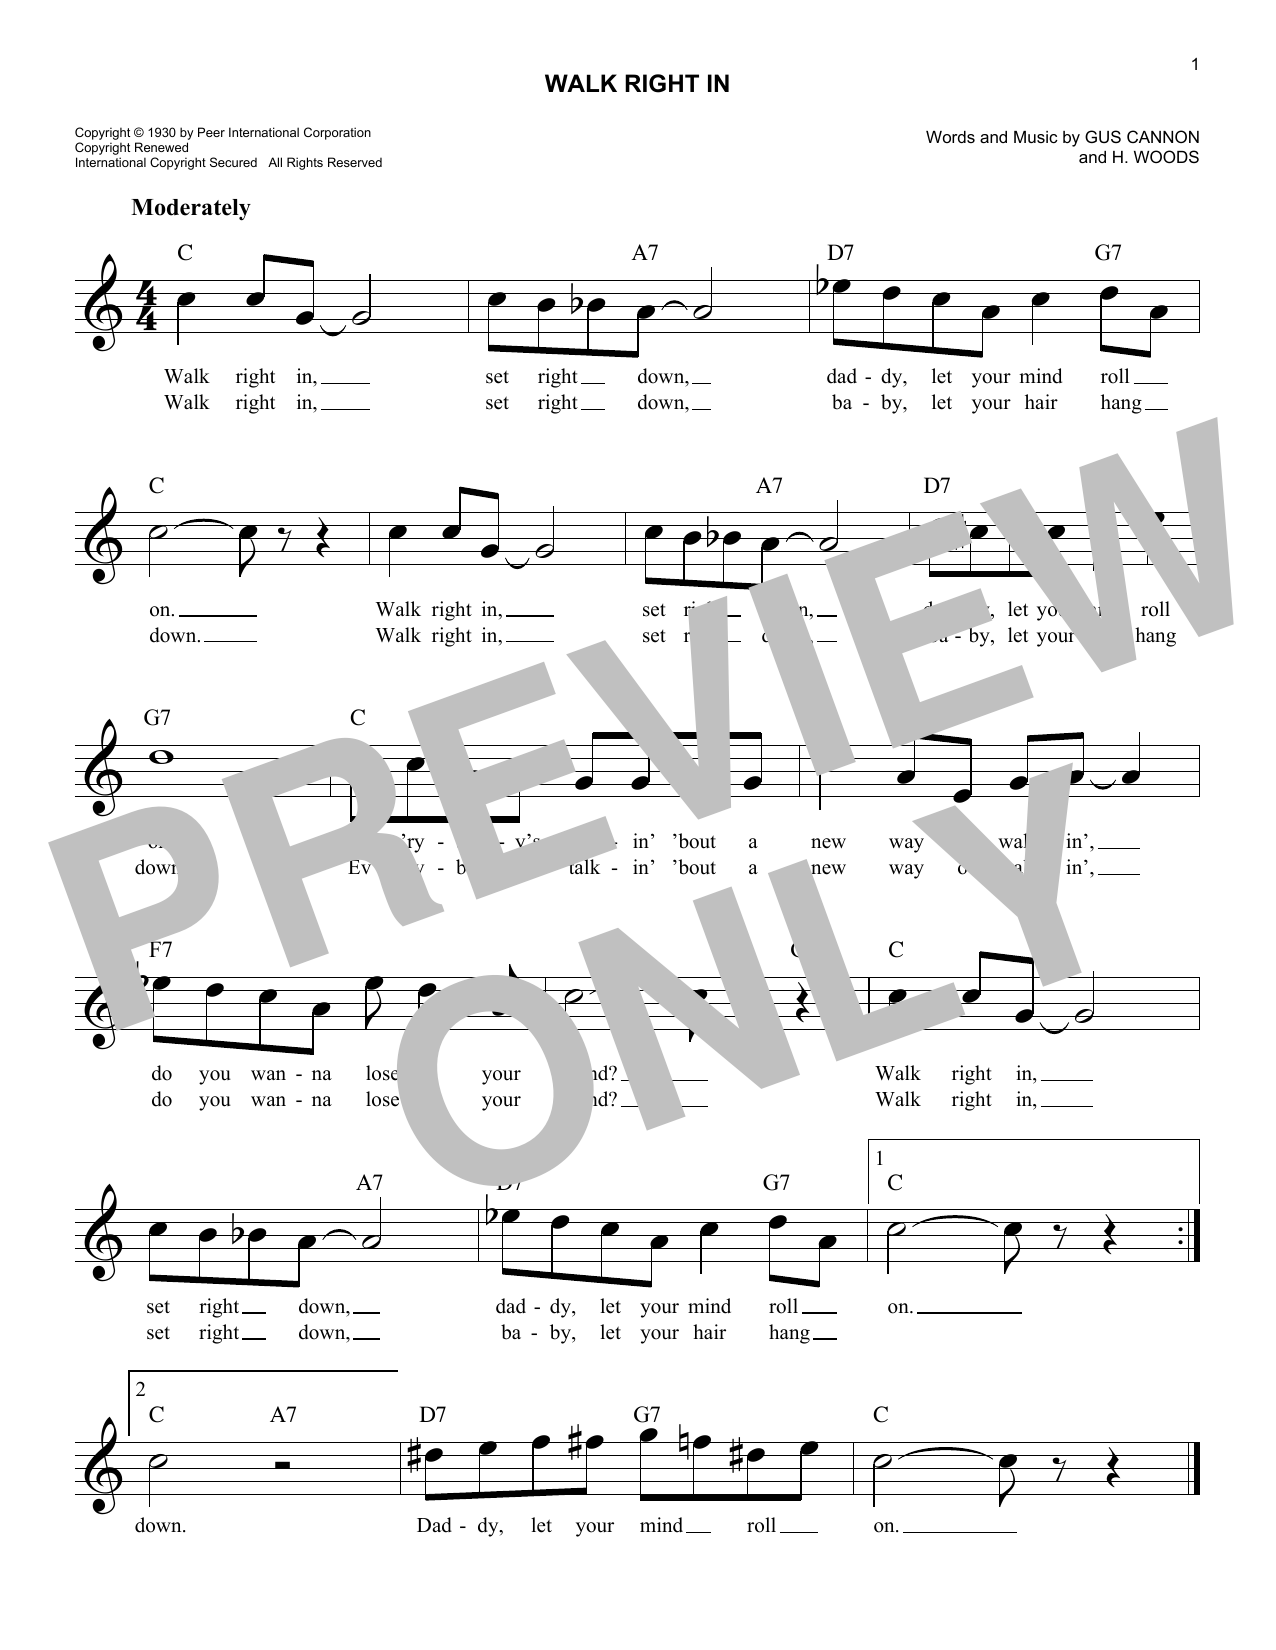 The Rooftop Singers Walk Right In sheet music notes and chords. Download Printable PDF.